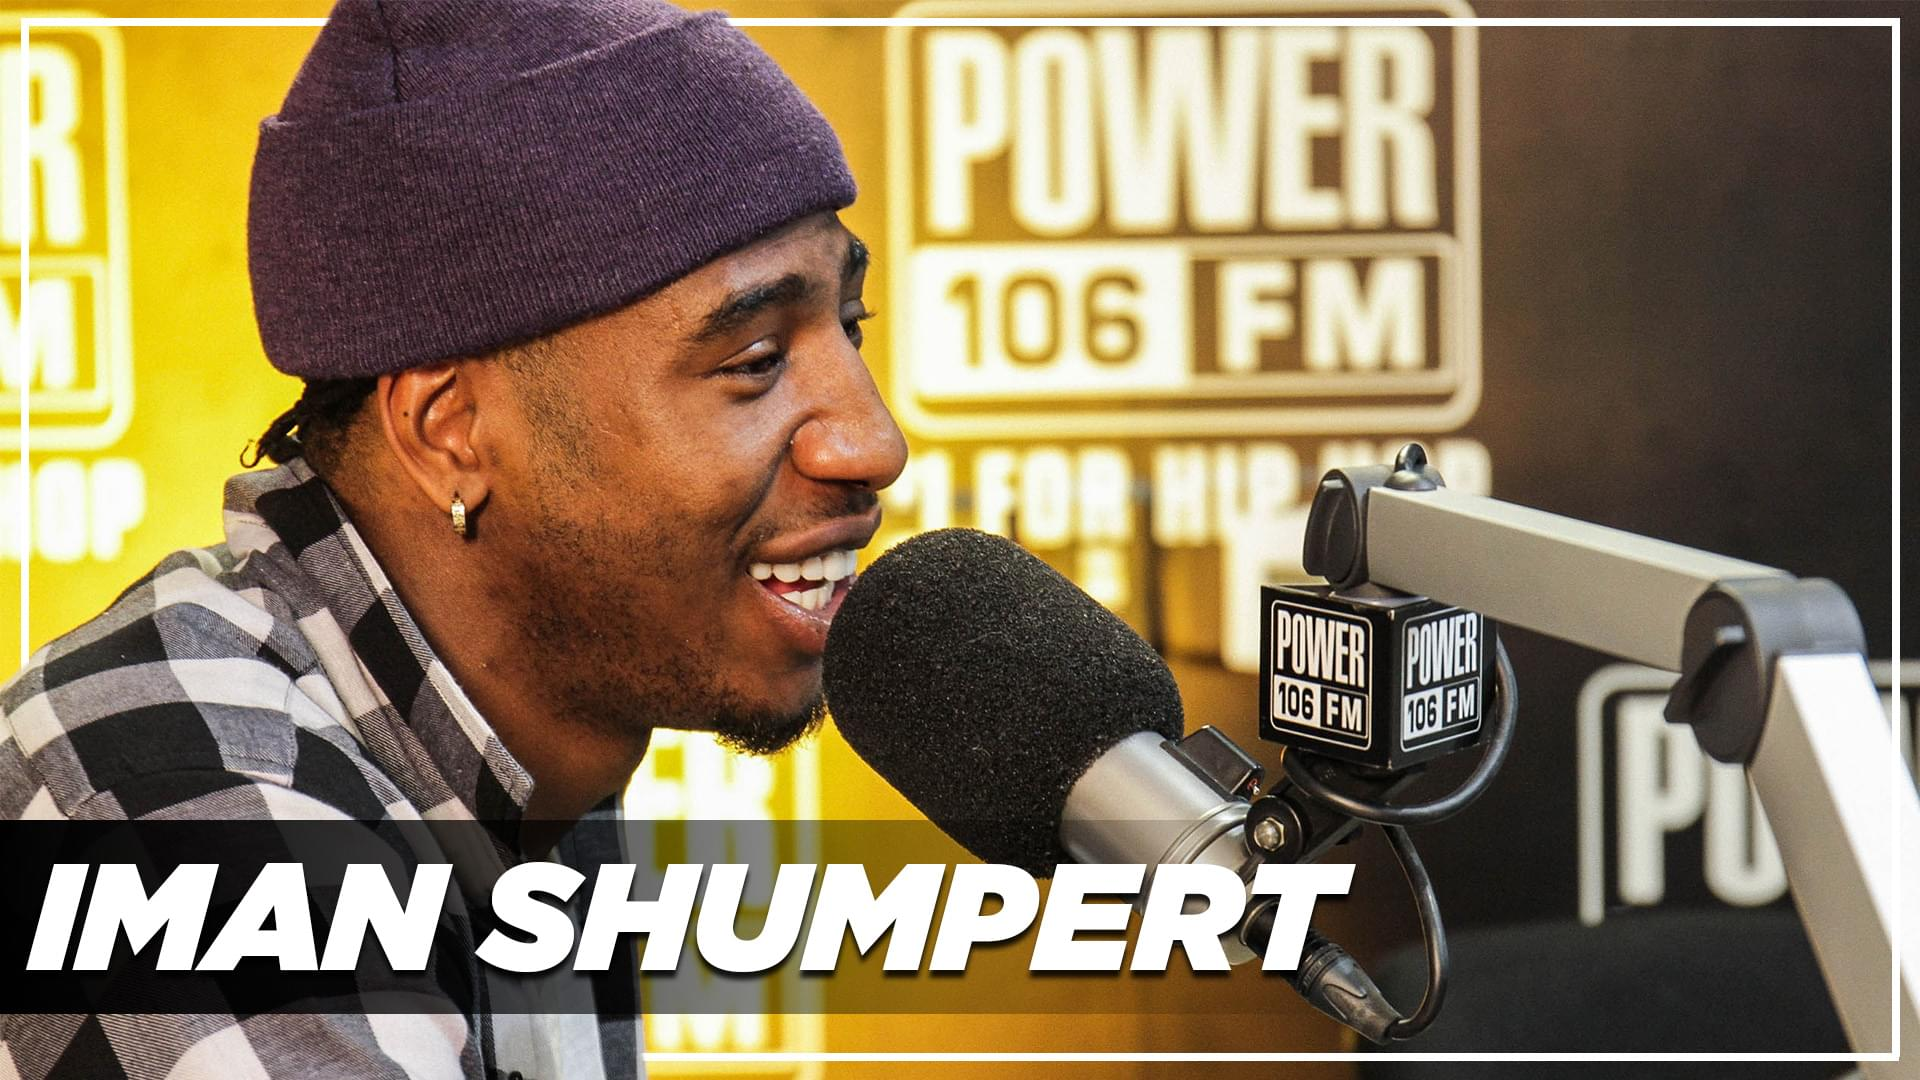 Iman Shumpert On Getting Curved By Teyana Taylor, Kanye's New Album & Making Angry Music!